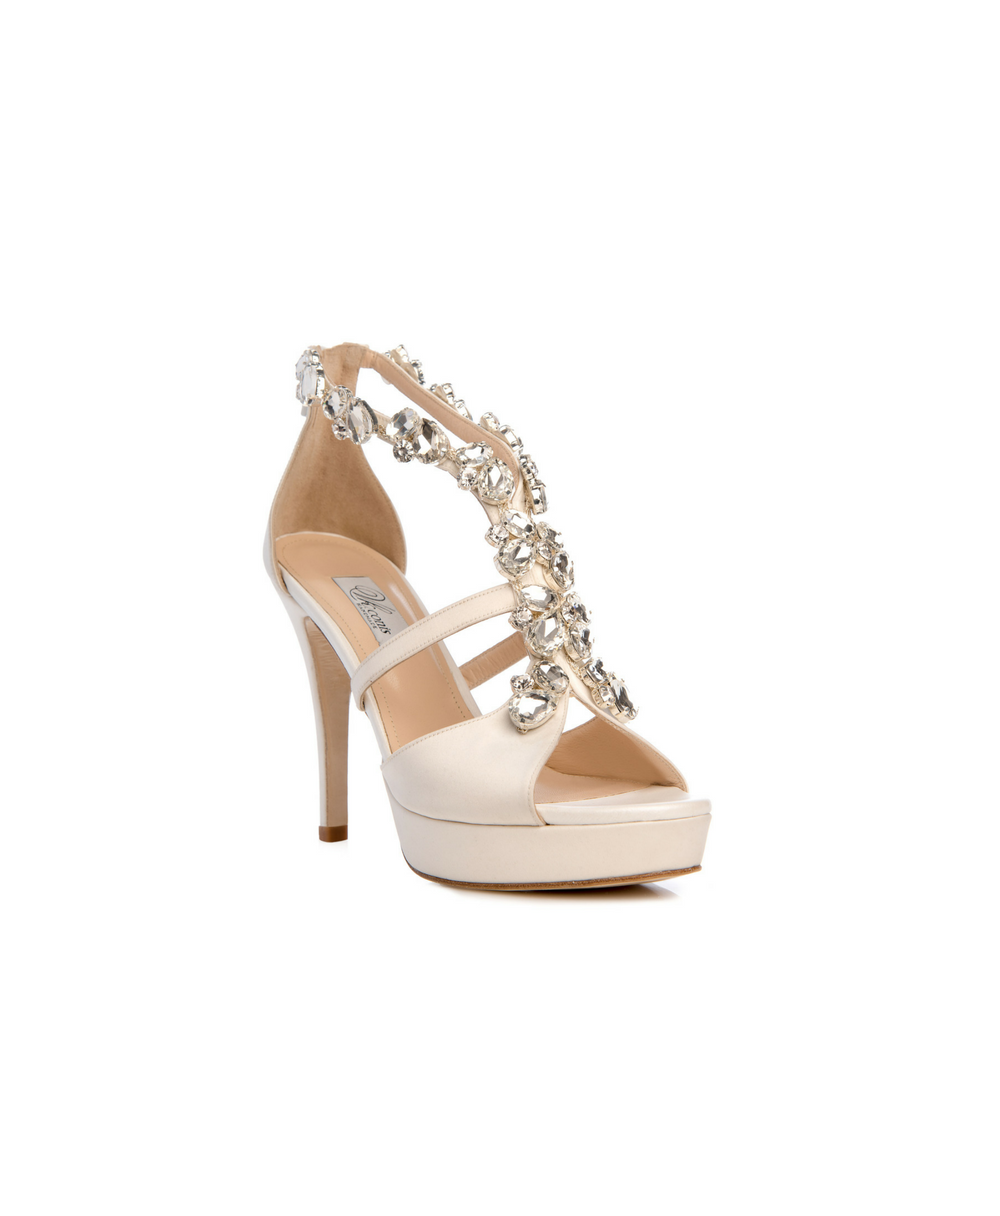 Bridal Ankle Zip Sandals With Satin And Crystals Mod.2568